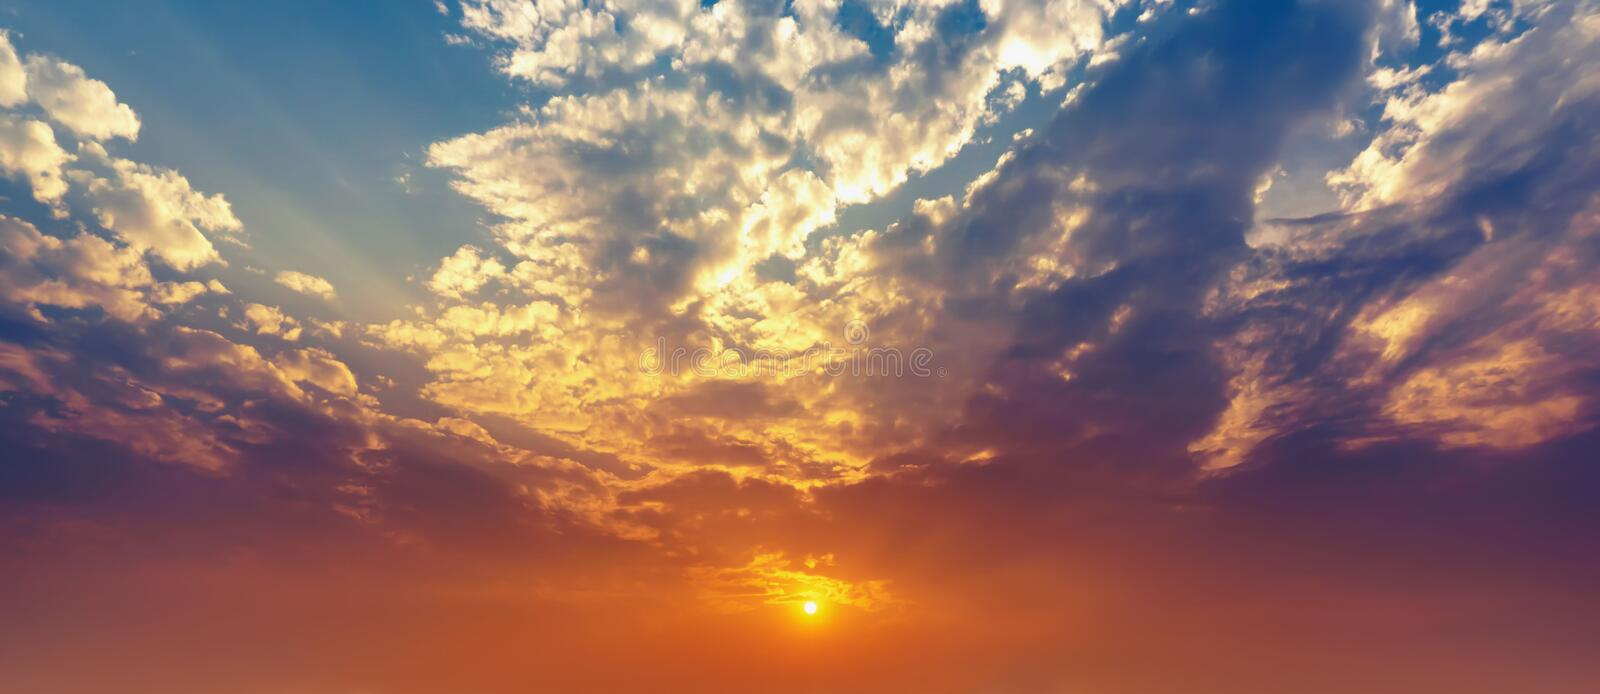 Panorama twilight sky and clouds and sun shining royalty free stock images